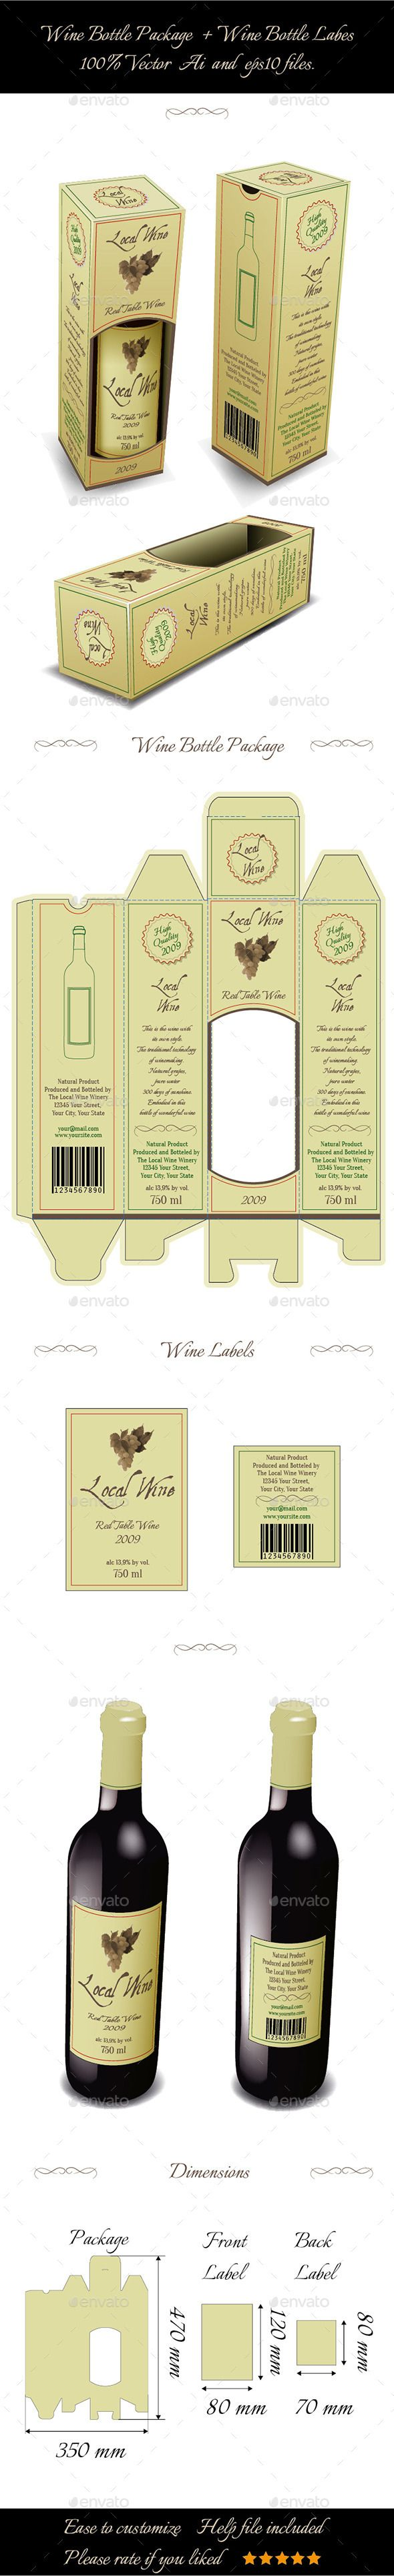 122 best # Packaging Templates images on Pinterest | Print templates ...